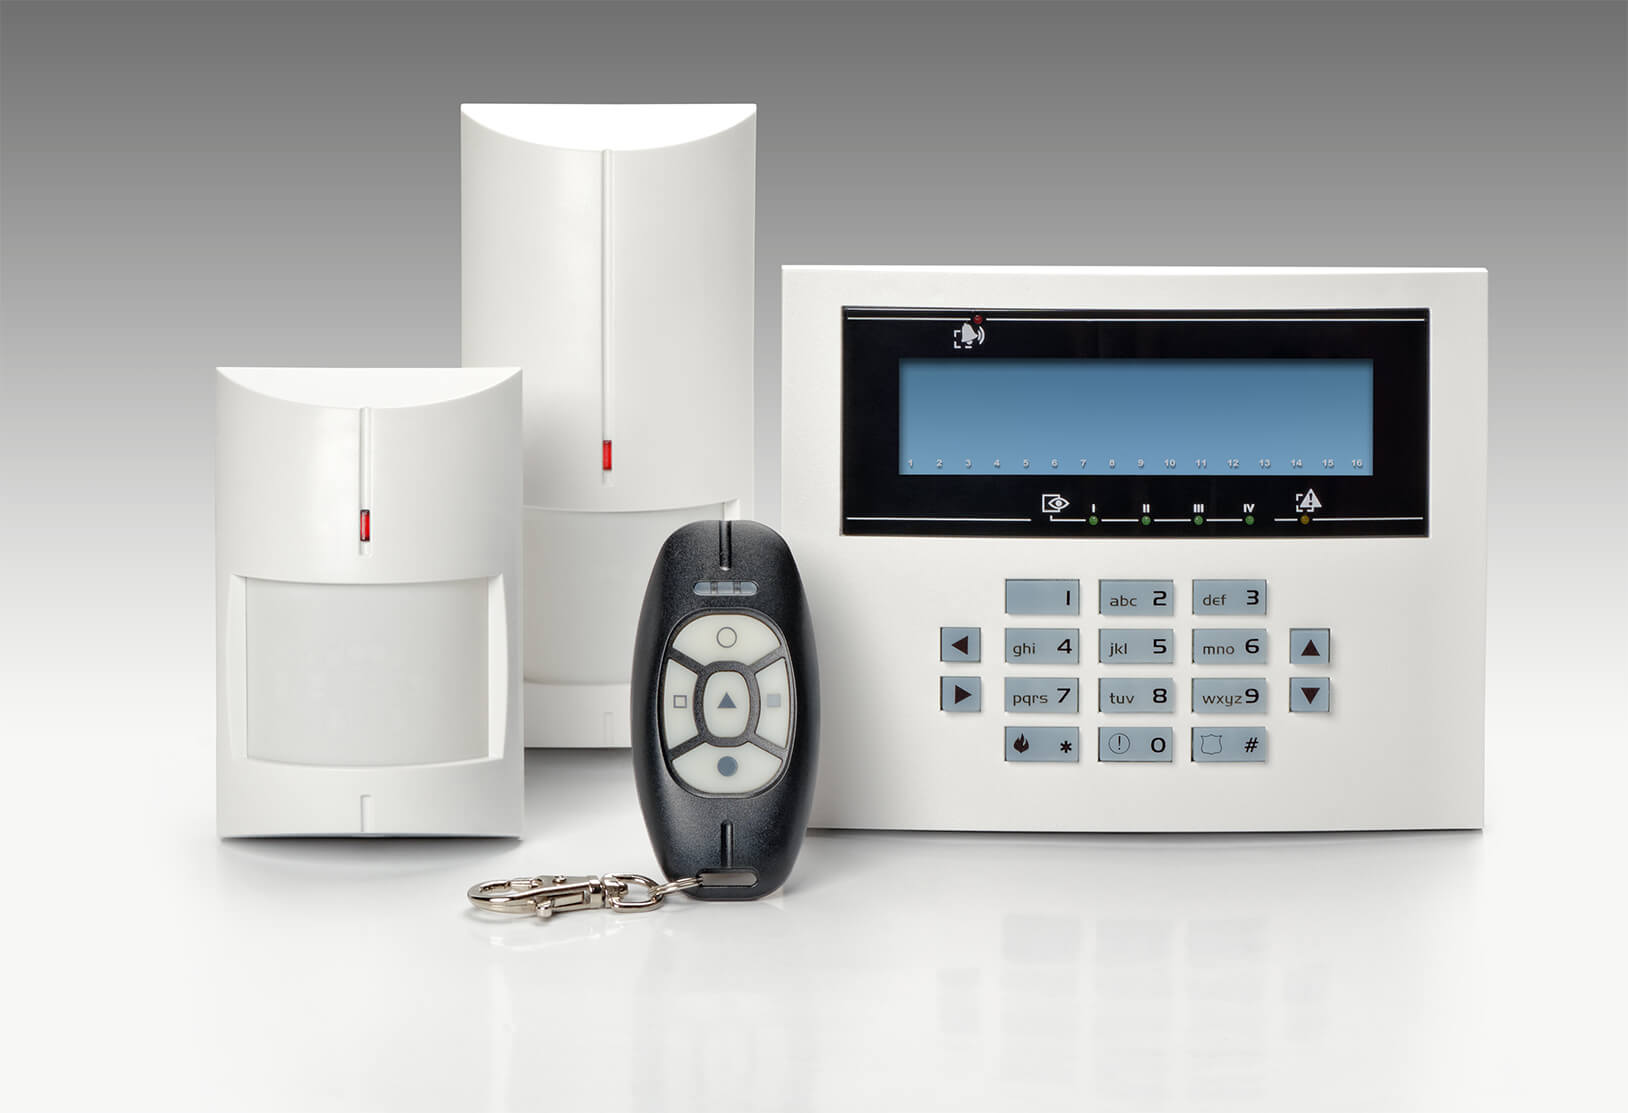 Business & Residential NSI / NACOSS Approved Burglar Alarms In Victoria Dock E16 - Local Victoria Dock E16 security company.Call 02078872244 - Dedicated to Safety & Security. Companies, shops and homes ..